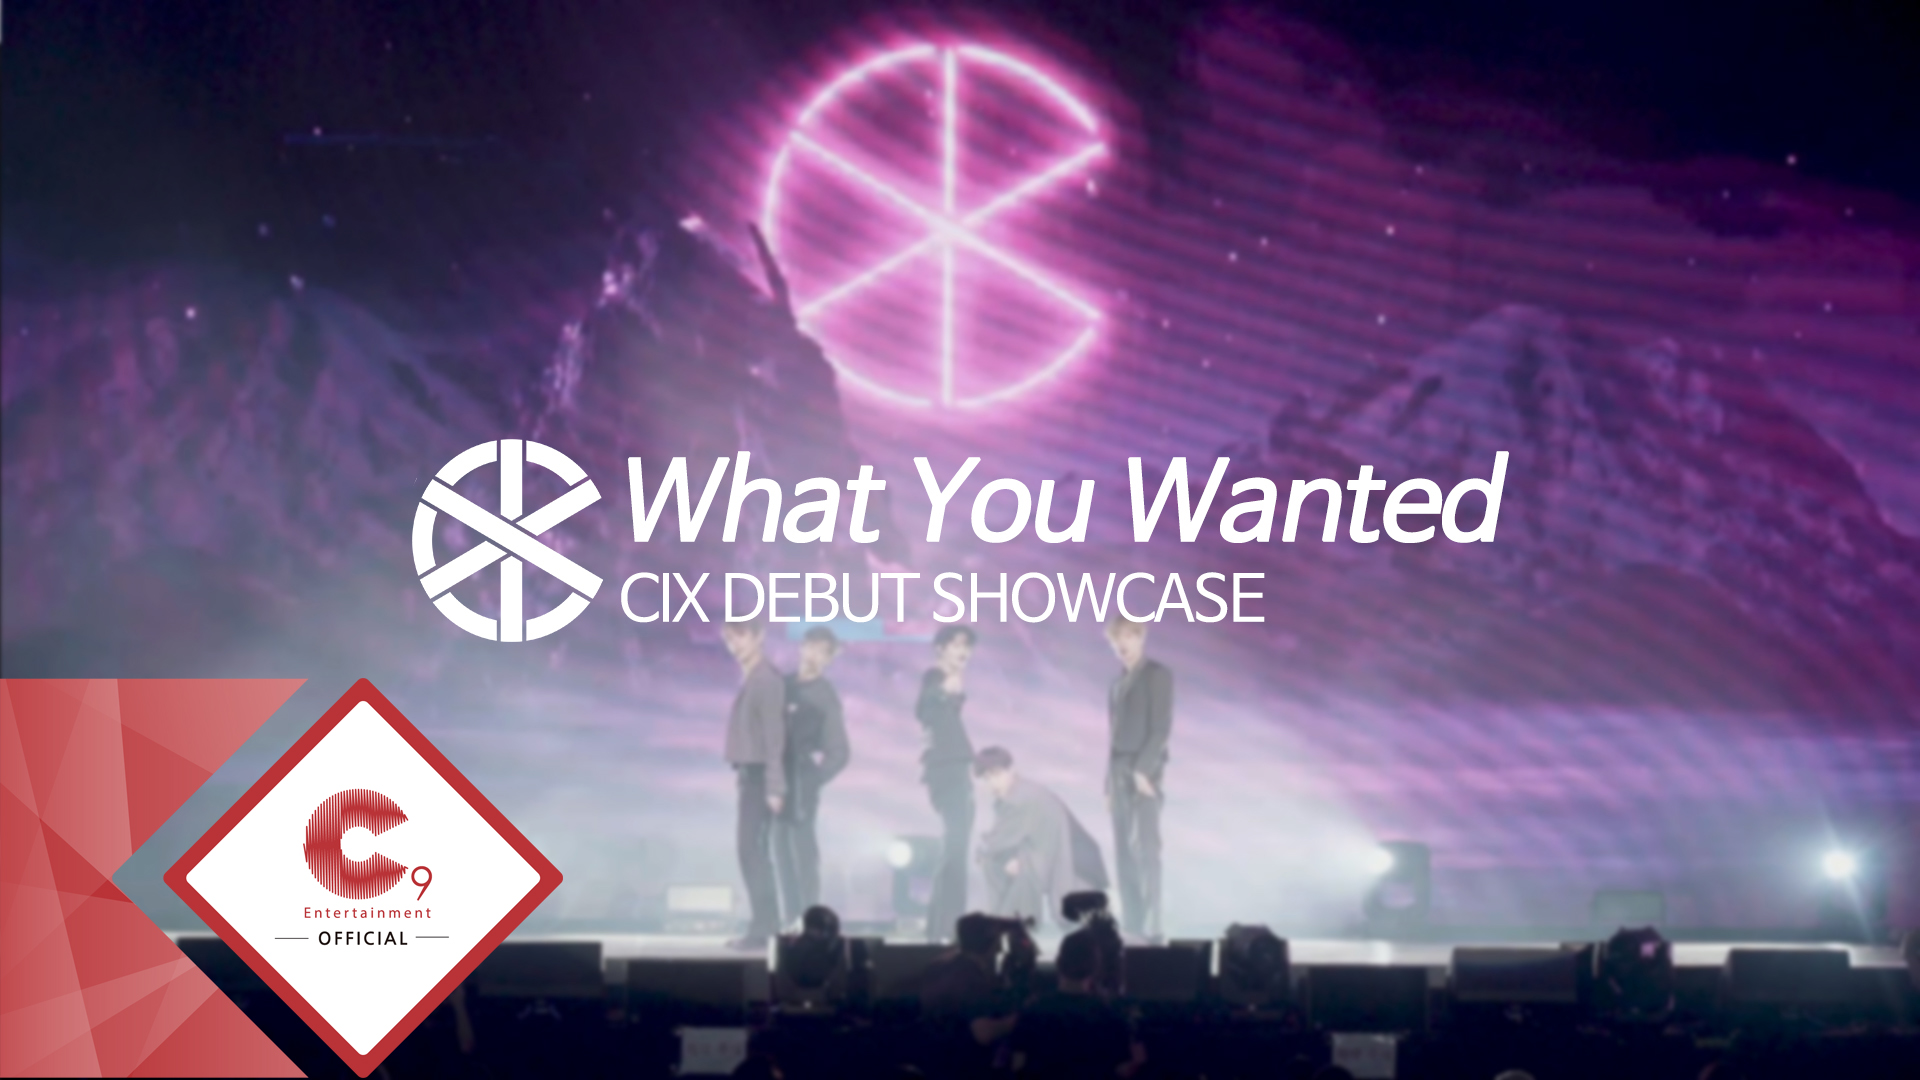 CIX (씨아이엑스) - 'What You Wanted' Showcase Stage